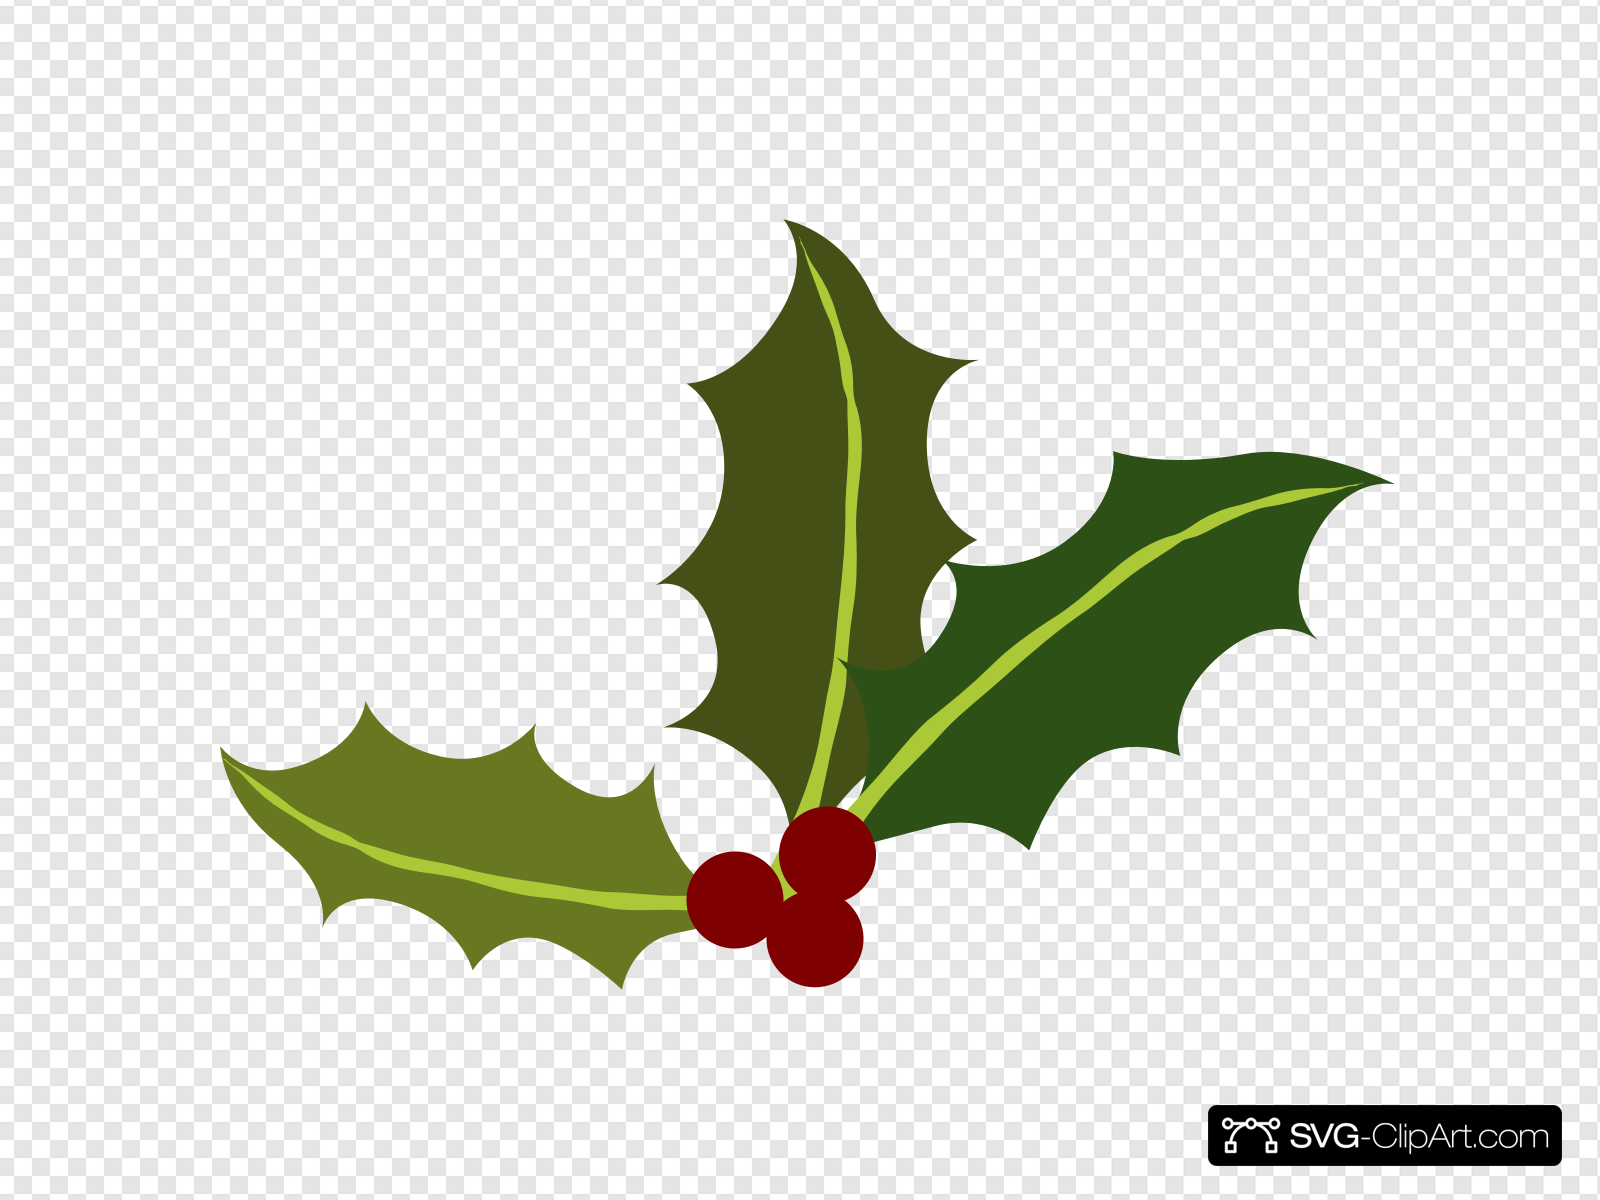 Holly Leaves With Berries Clip art, Icon and SVG.